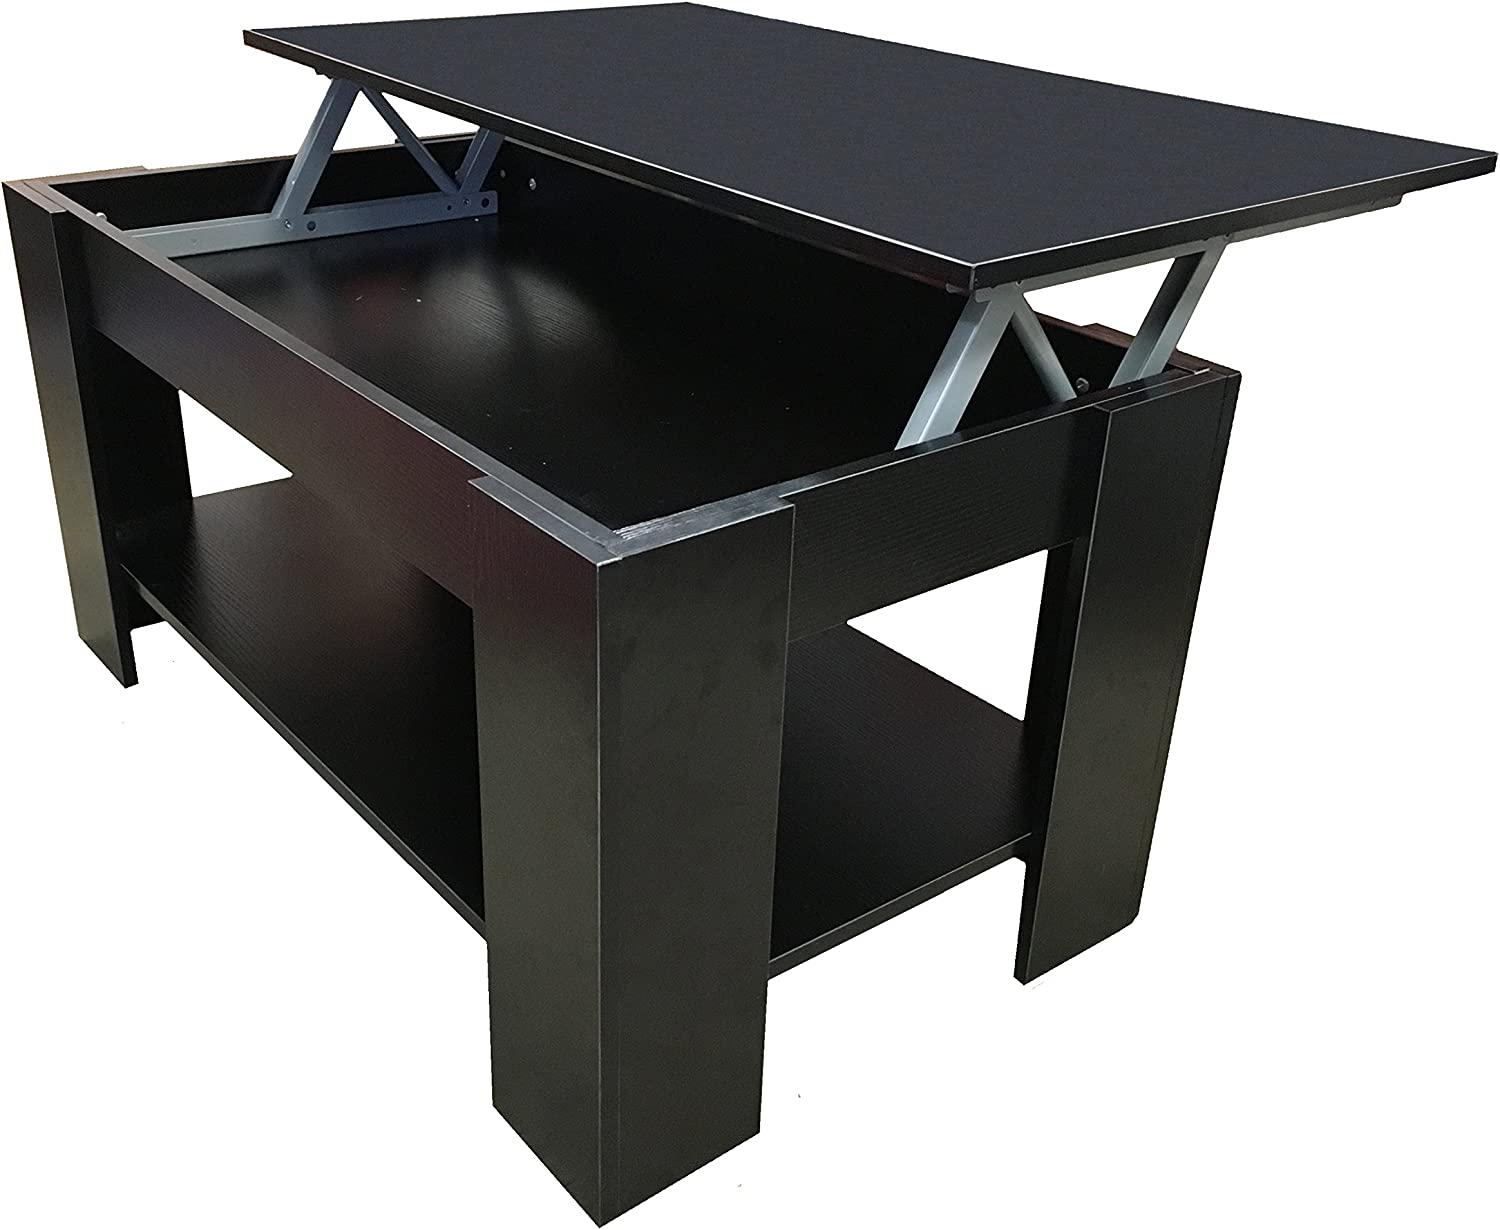 - Redstone Coffee Table Lift Up Top With Storage Black: Amazon.co.uk